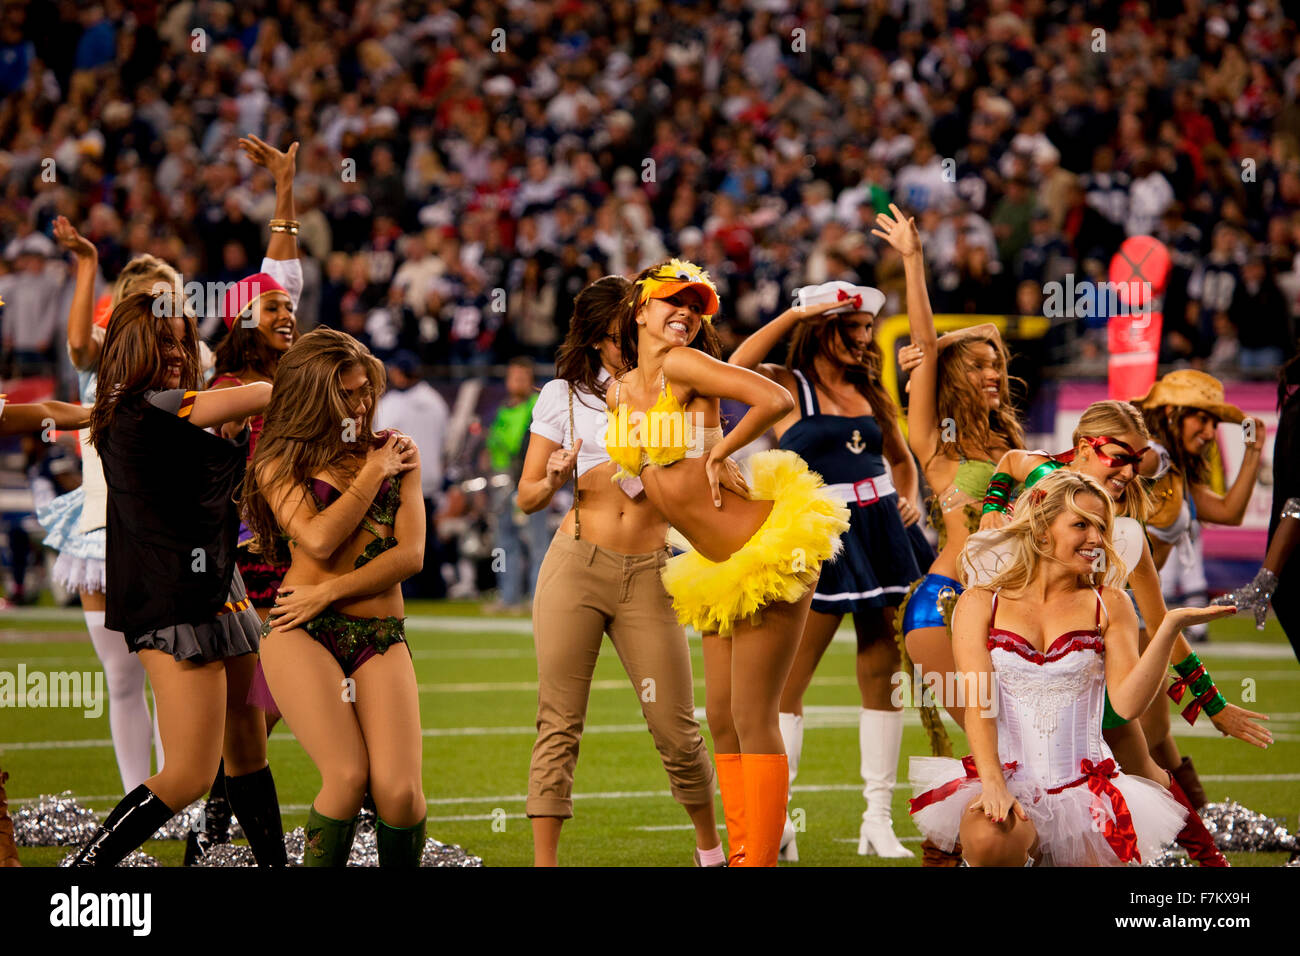 New England Patriot cheerleaders in Halloween costume at Gillette Stadium the home of Super Bowl  sc 1 st  Alamy & Dallas Cowboys Cheerleaders Stock Photos u0026 Dallas Cowboys ...